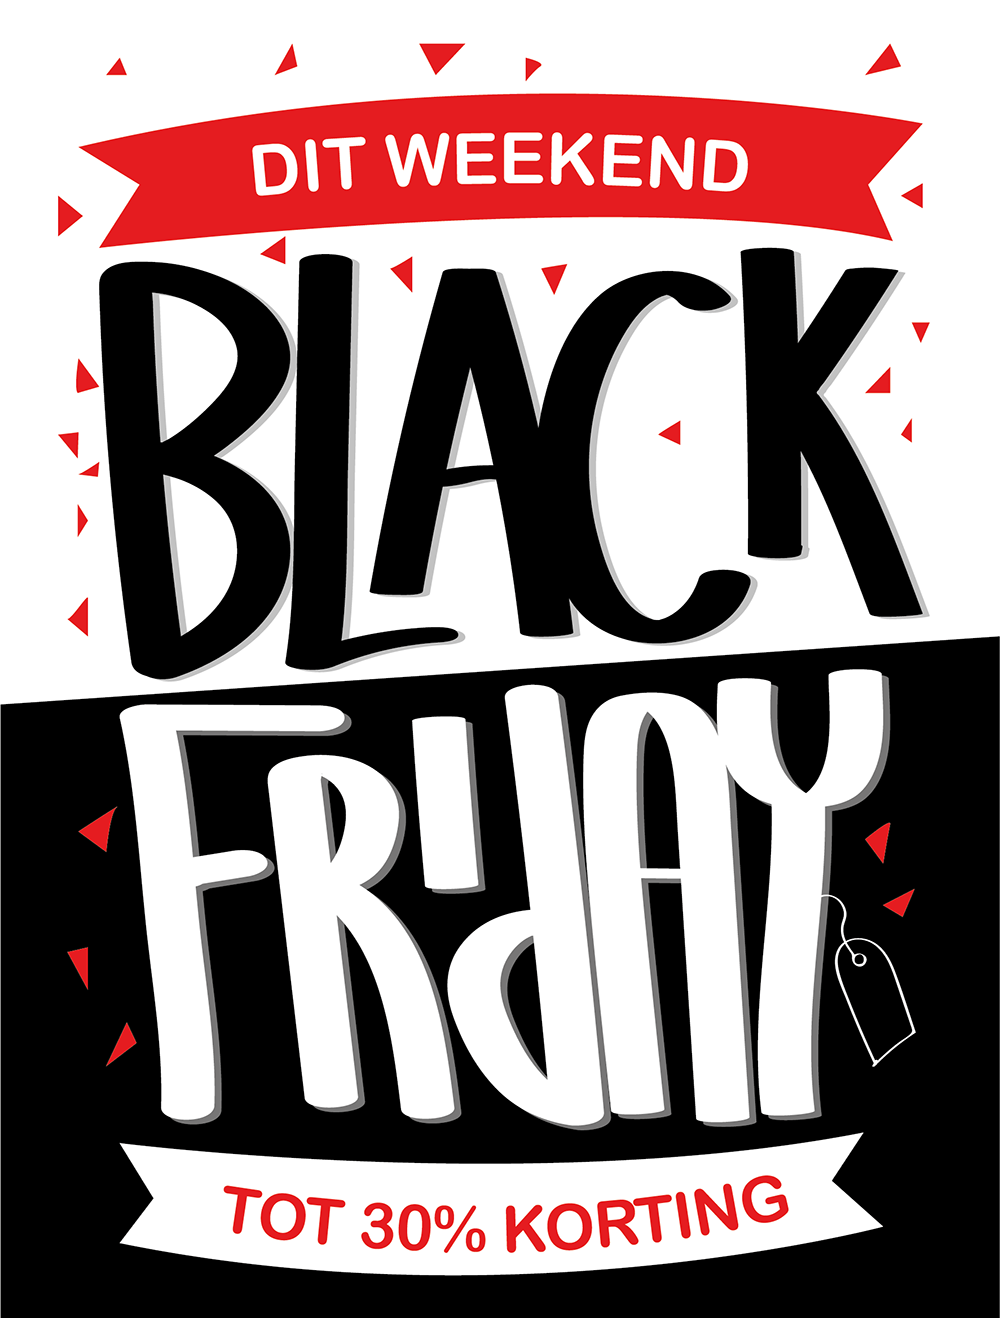 Black Friday! Dit weekend tot 30% korting!